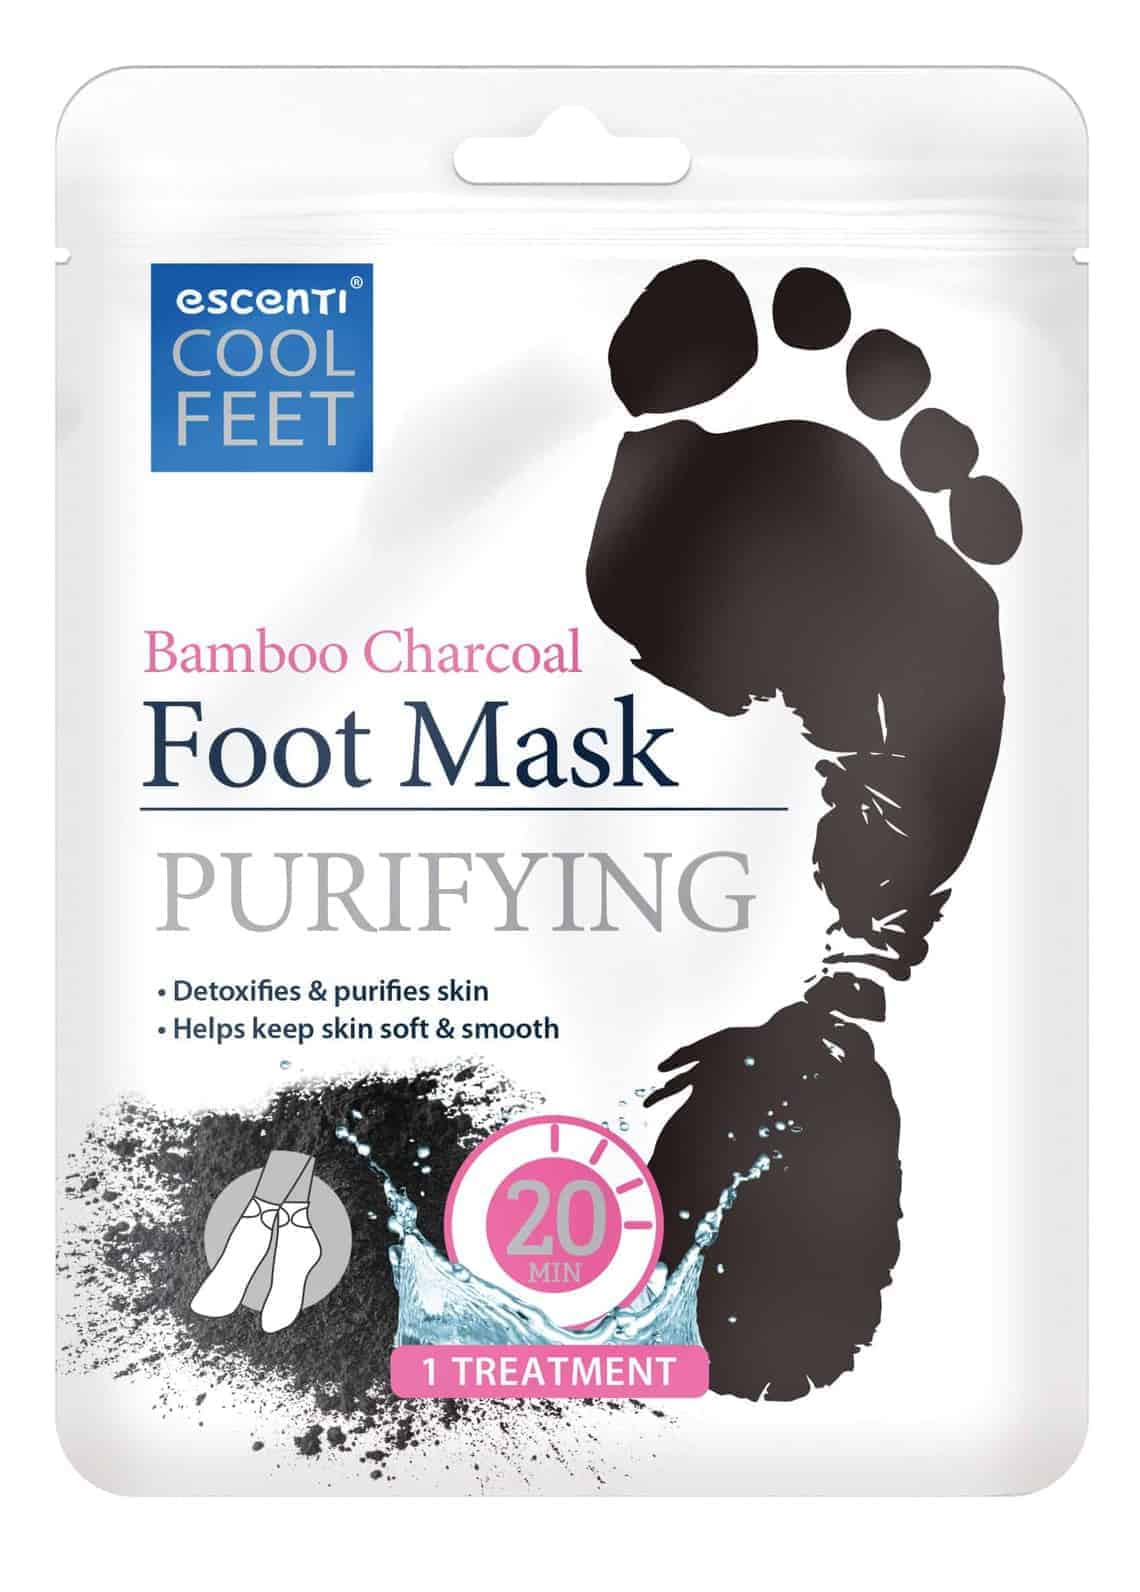 Escenti Cool Feet Bamboo Charcoal Foot Mas